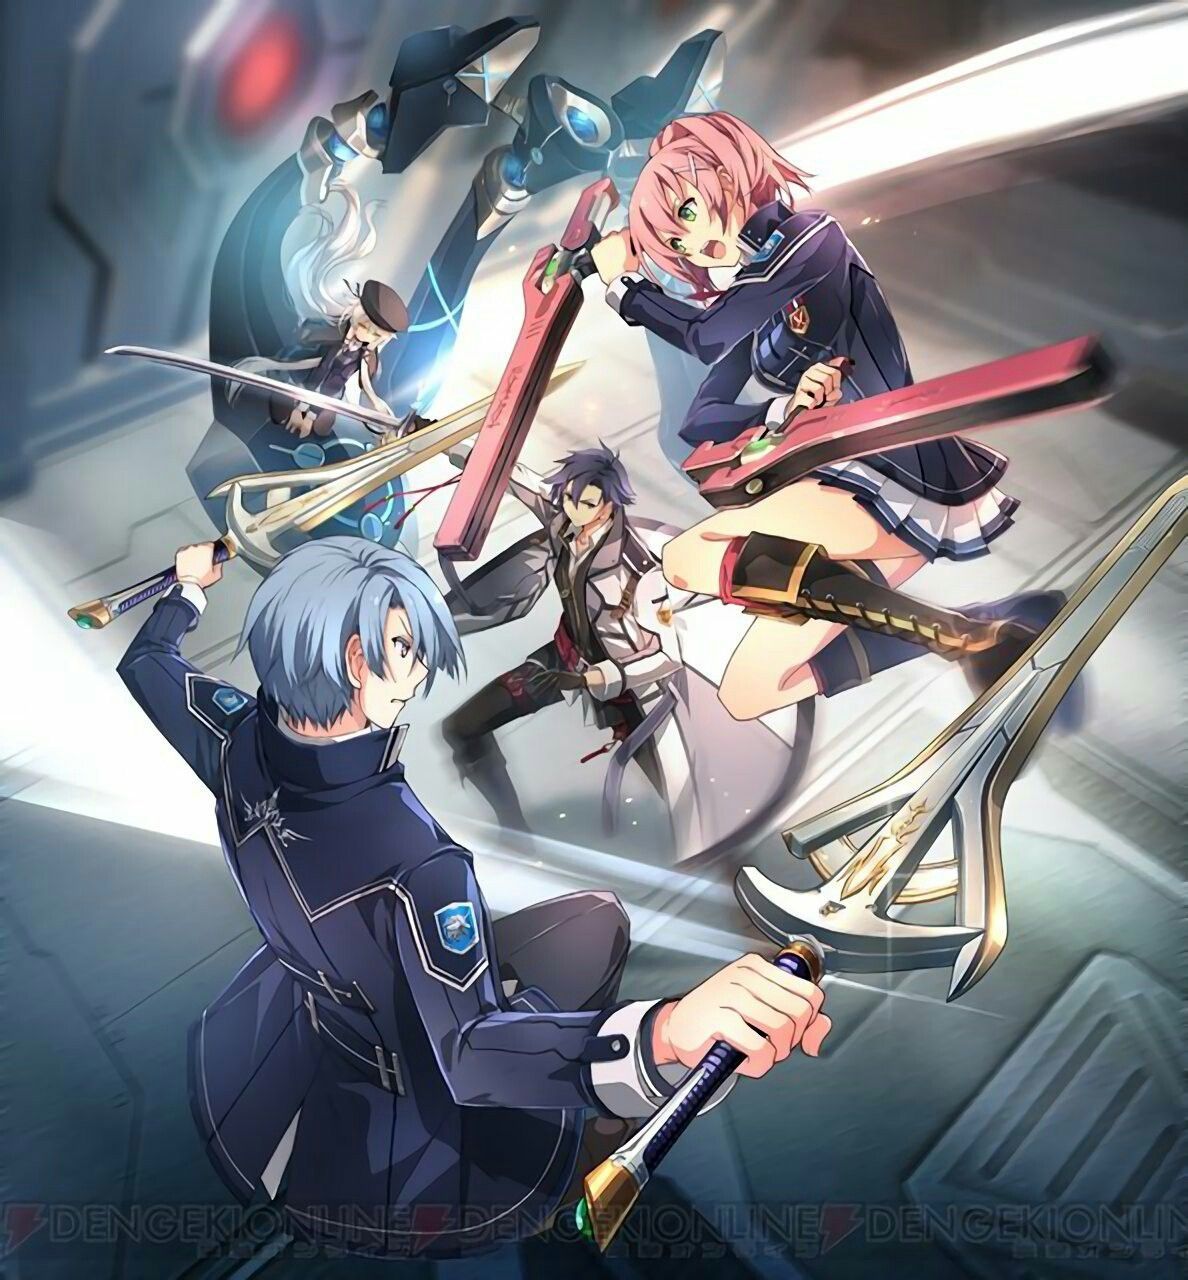 Cold Steel Iii Hype Trails Of Cold Steel The Legend Of Heroes Anime